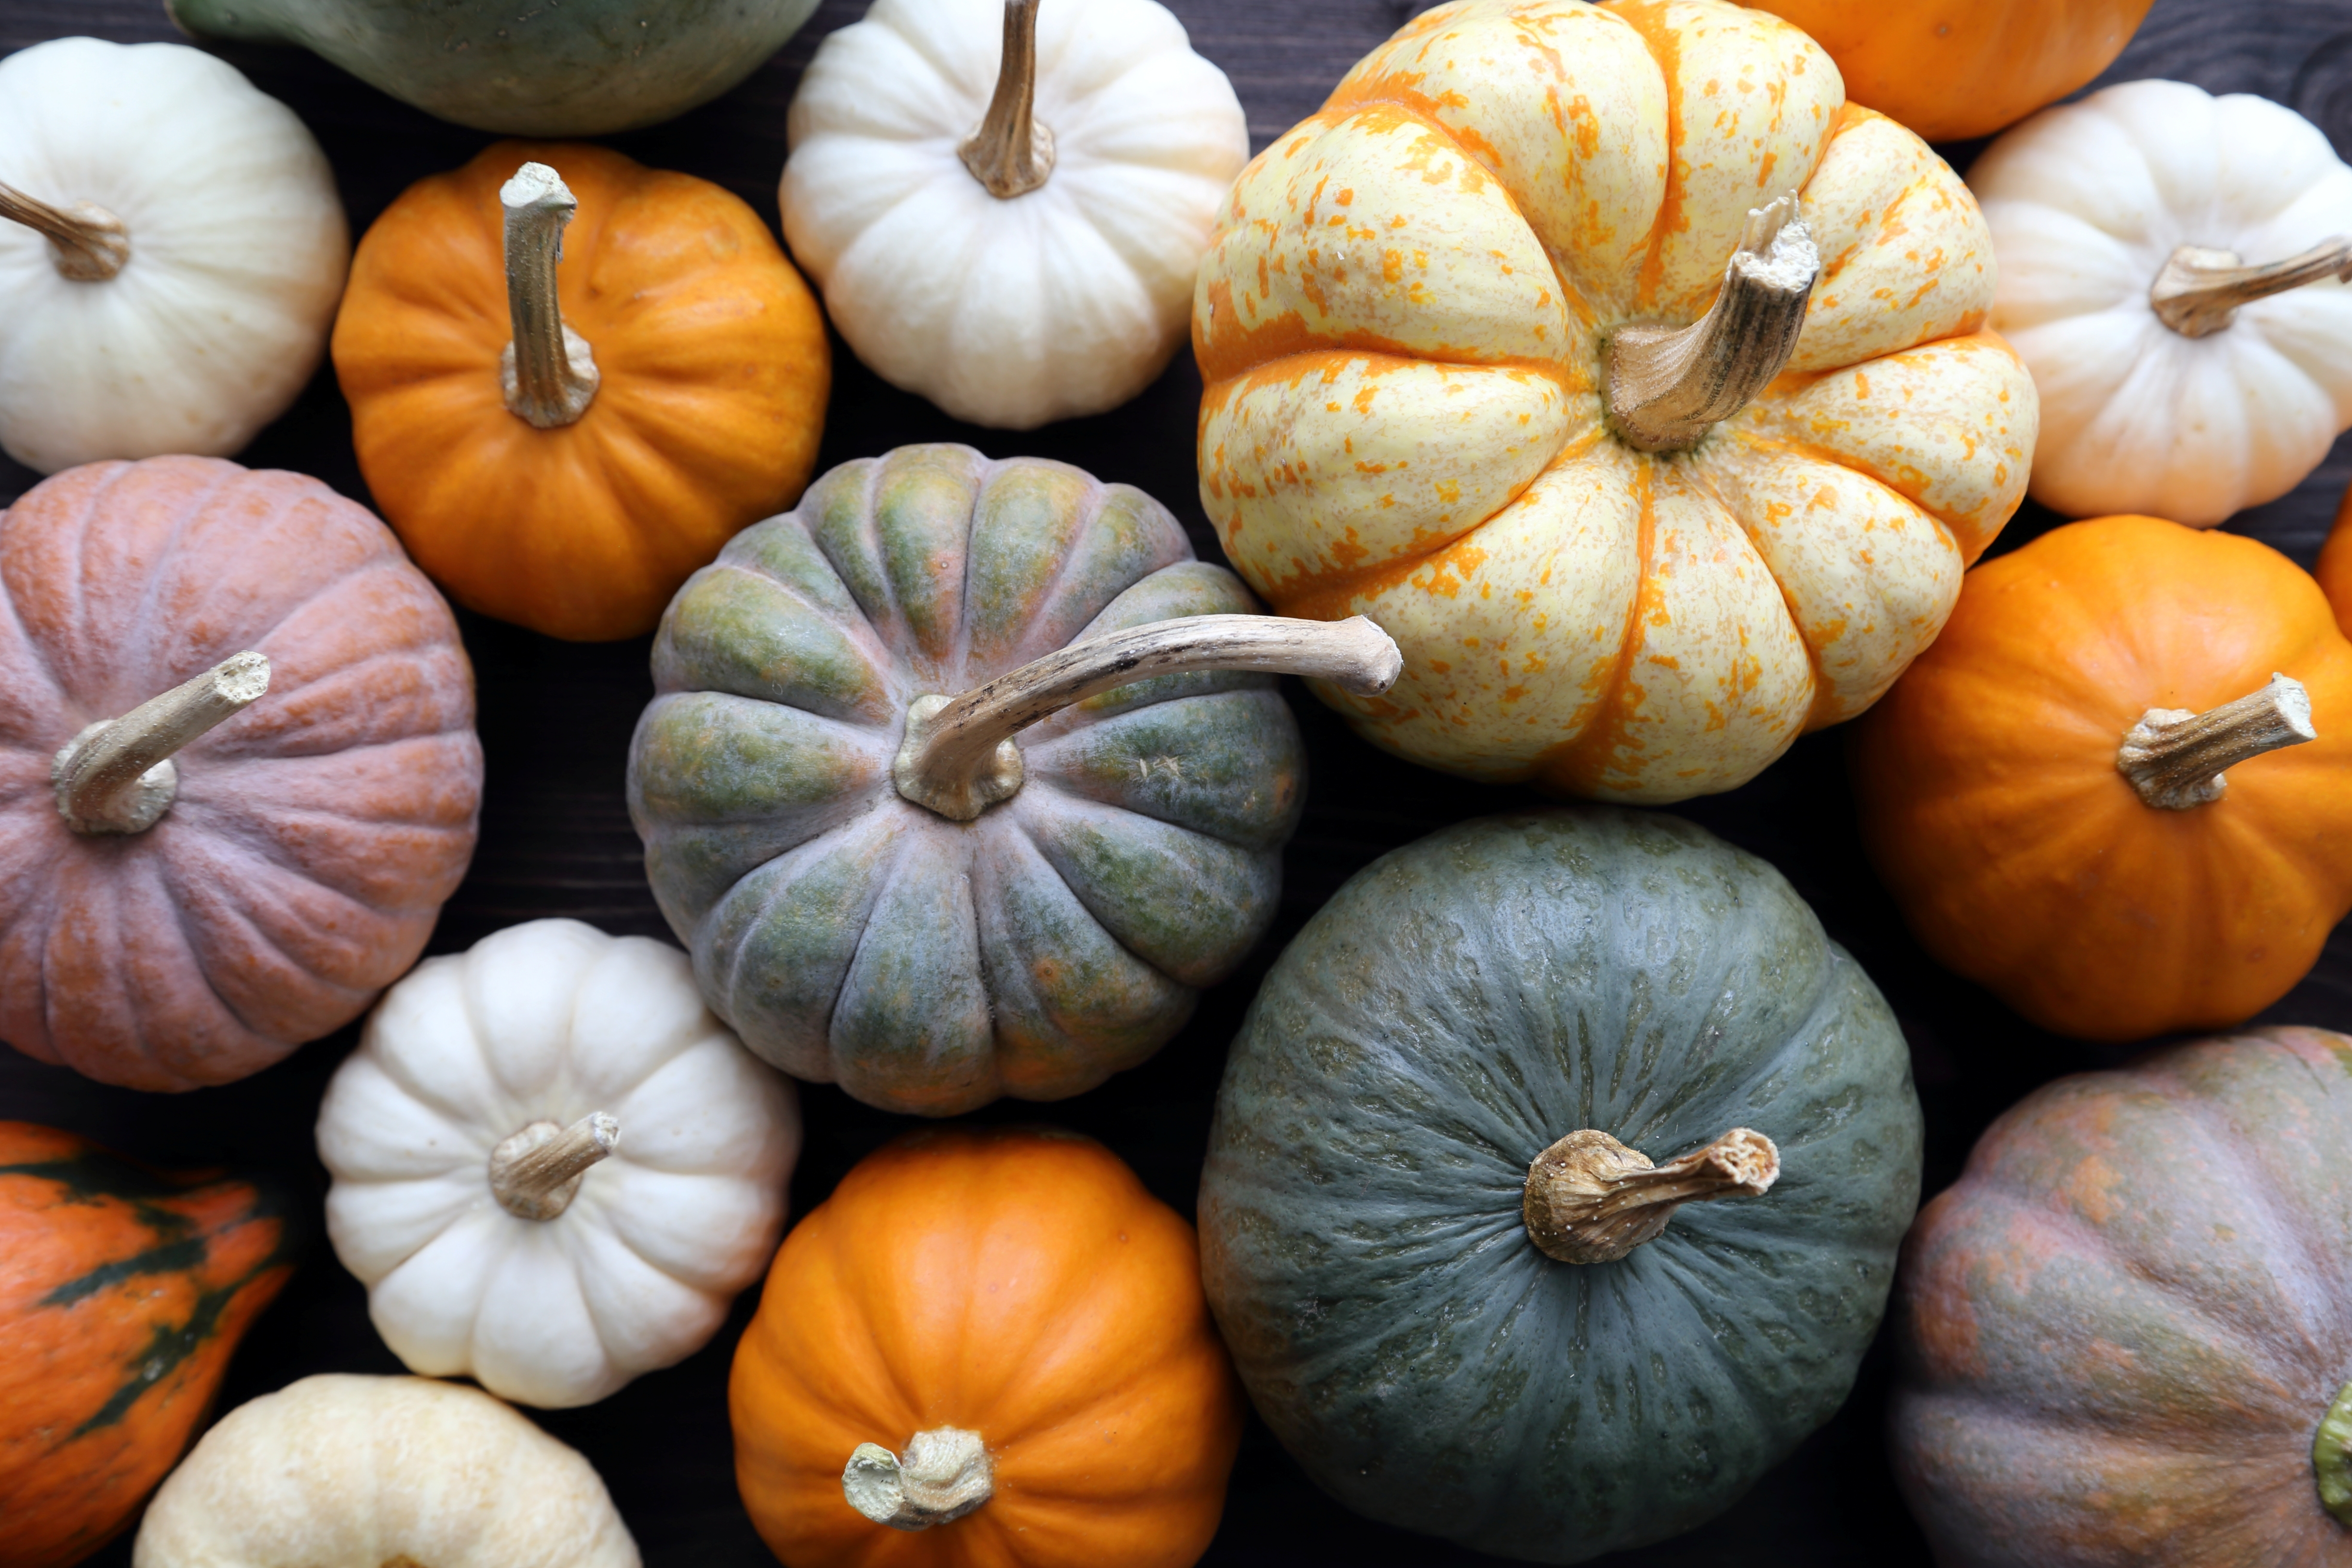 PSL: Pumpkin Sales Lift?